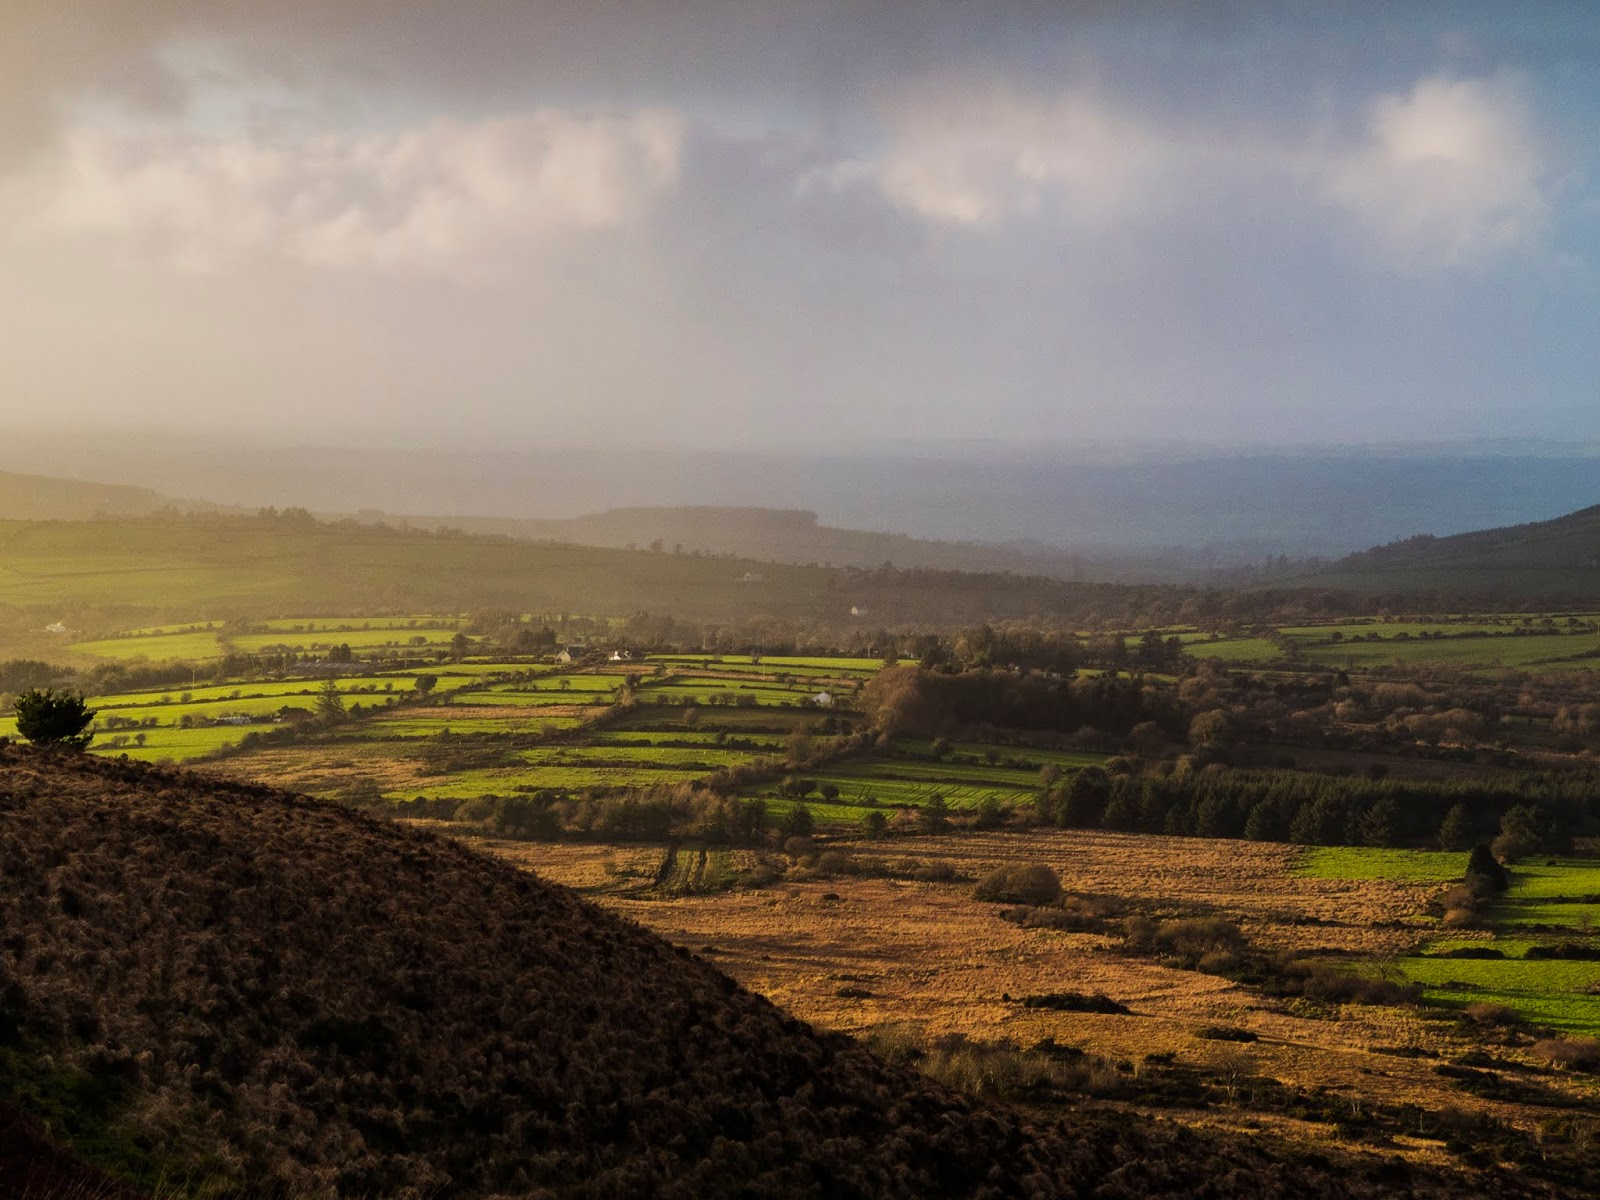 Hazy sunset landscape of a valley in North Cork.